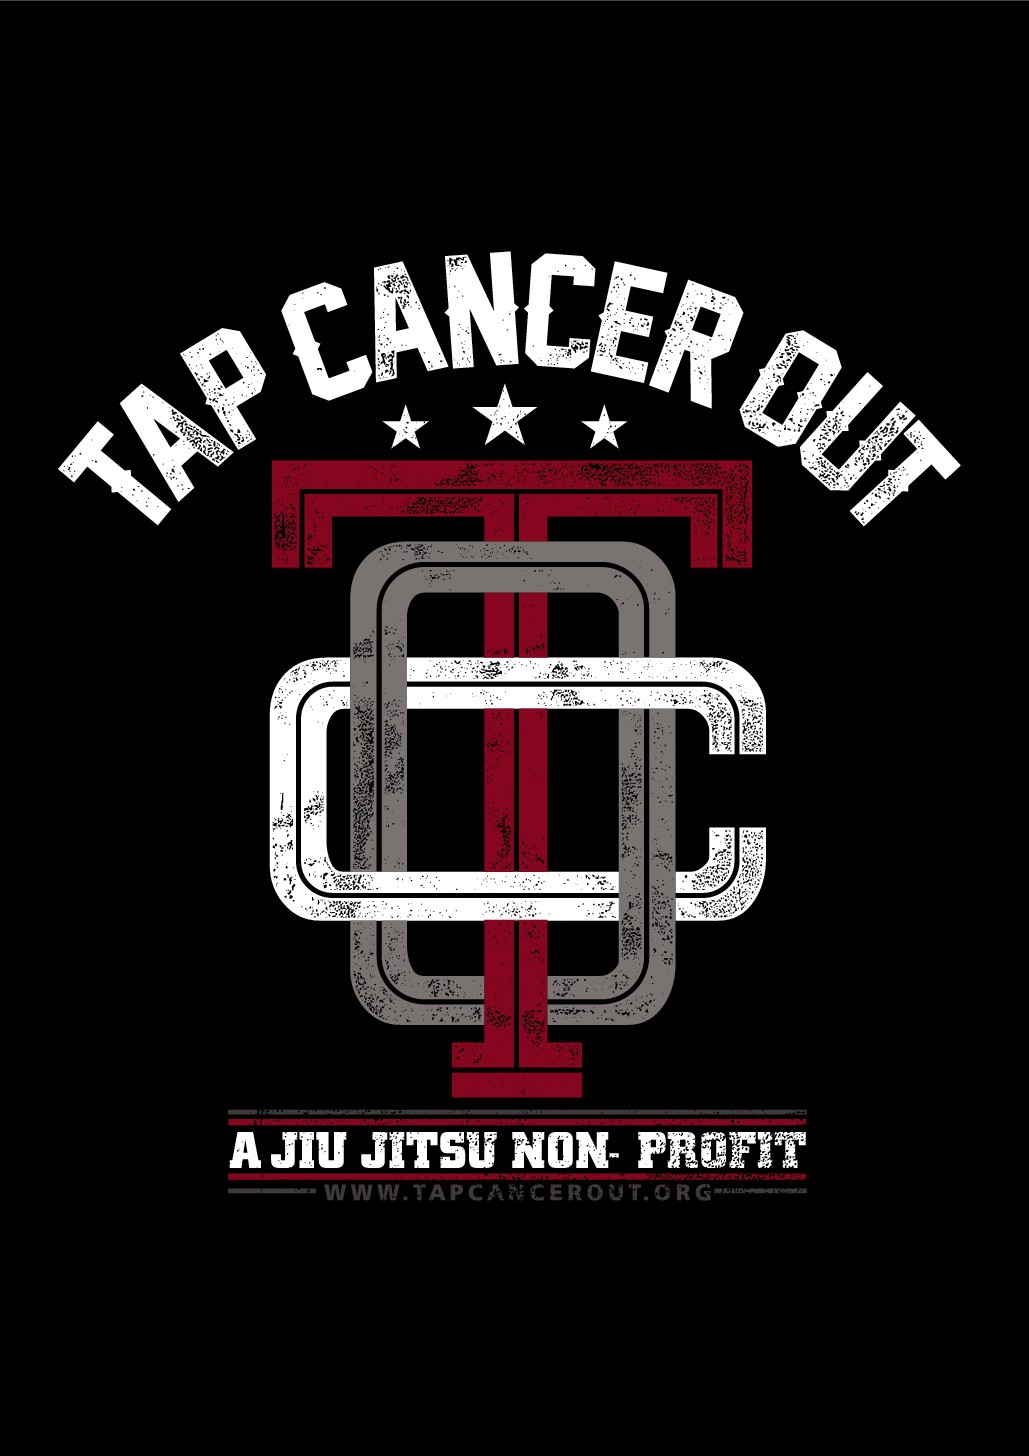 Design a Cancer-Fighting BJJ Nonprofit's Newest Tee (or Tees)